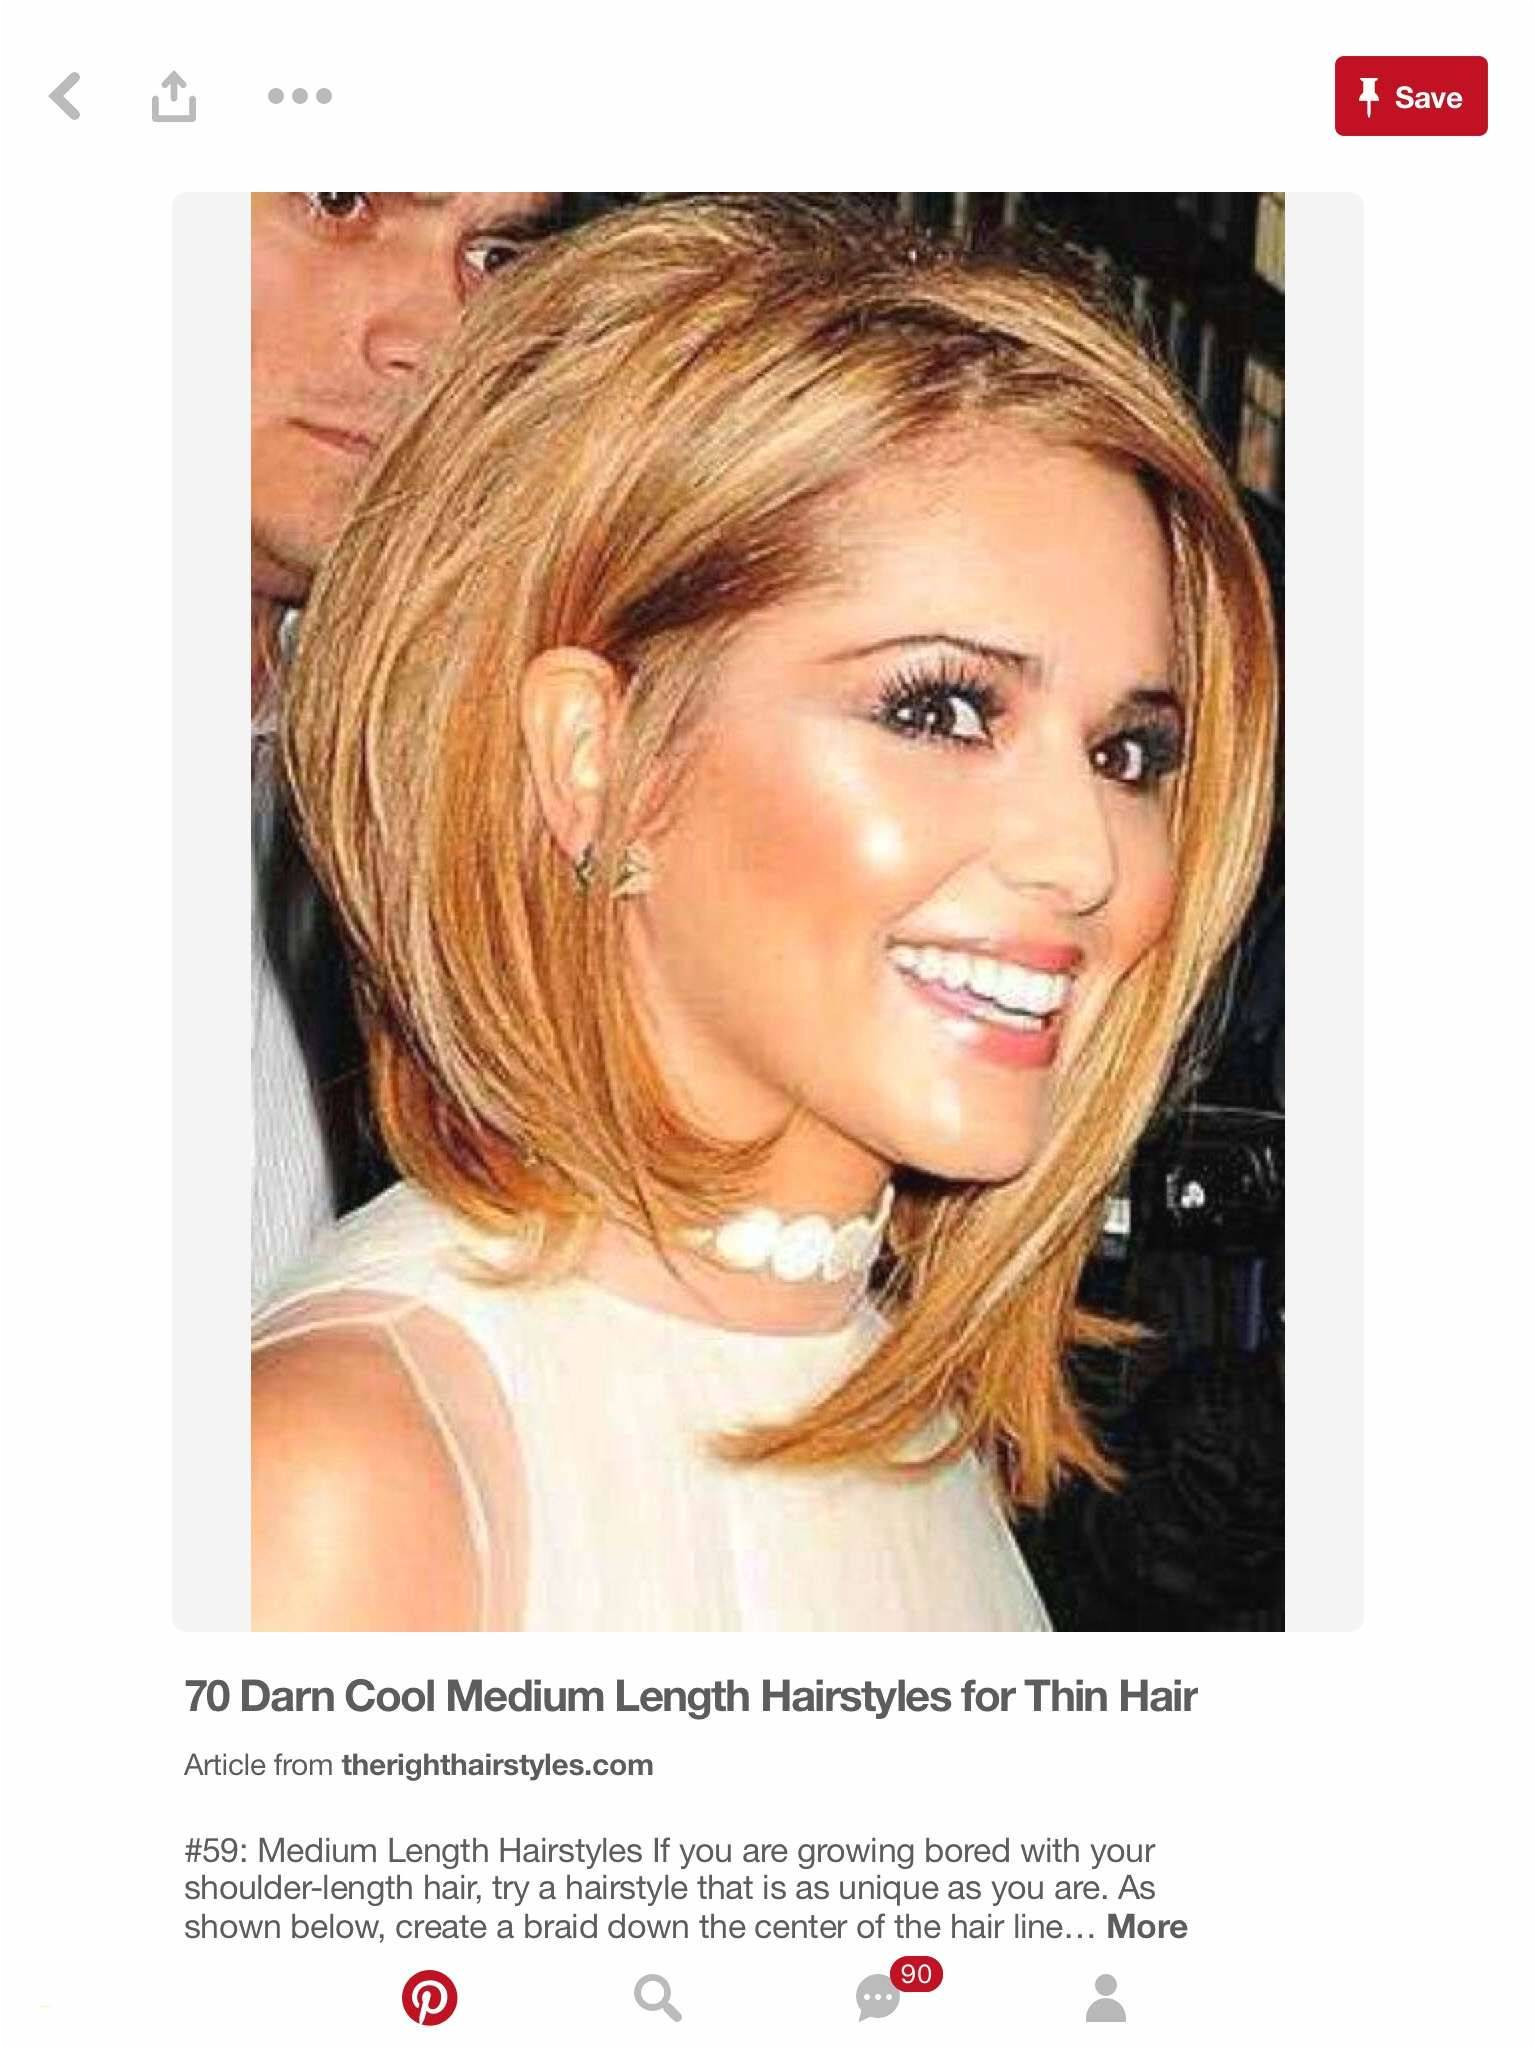 Hairstyles for Thin Hair Line Wedding Hairstyles for Thin Hair Unique Bob Hairstyles for Thin Hair